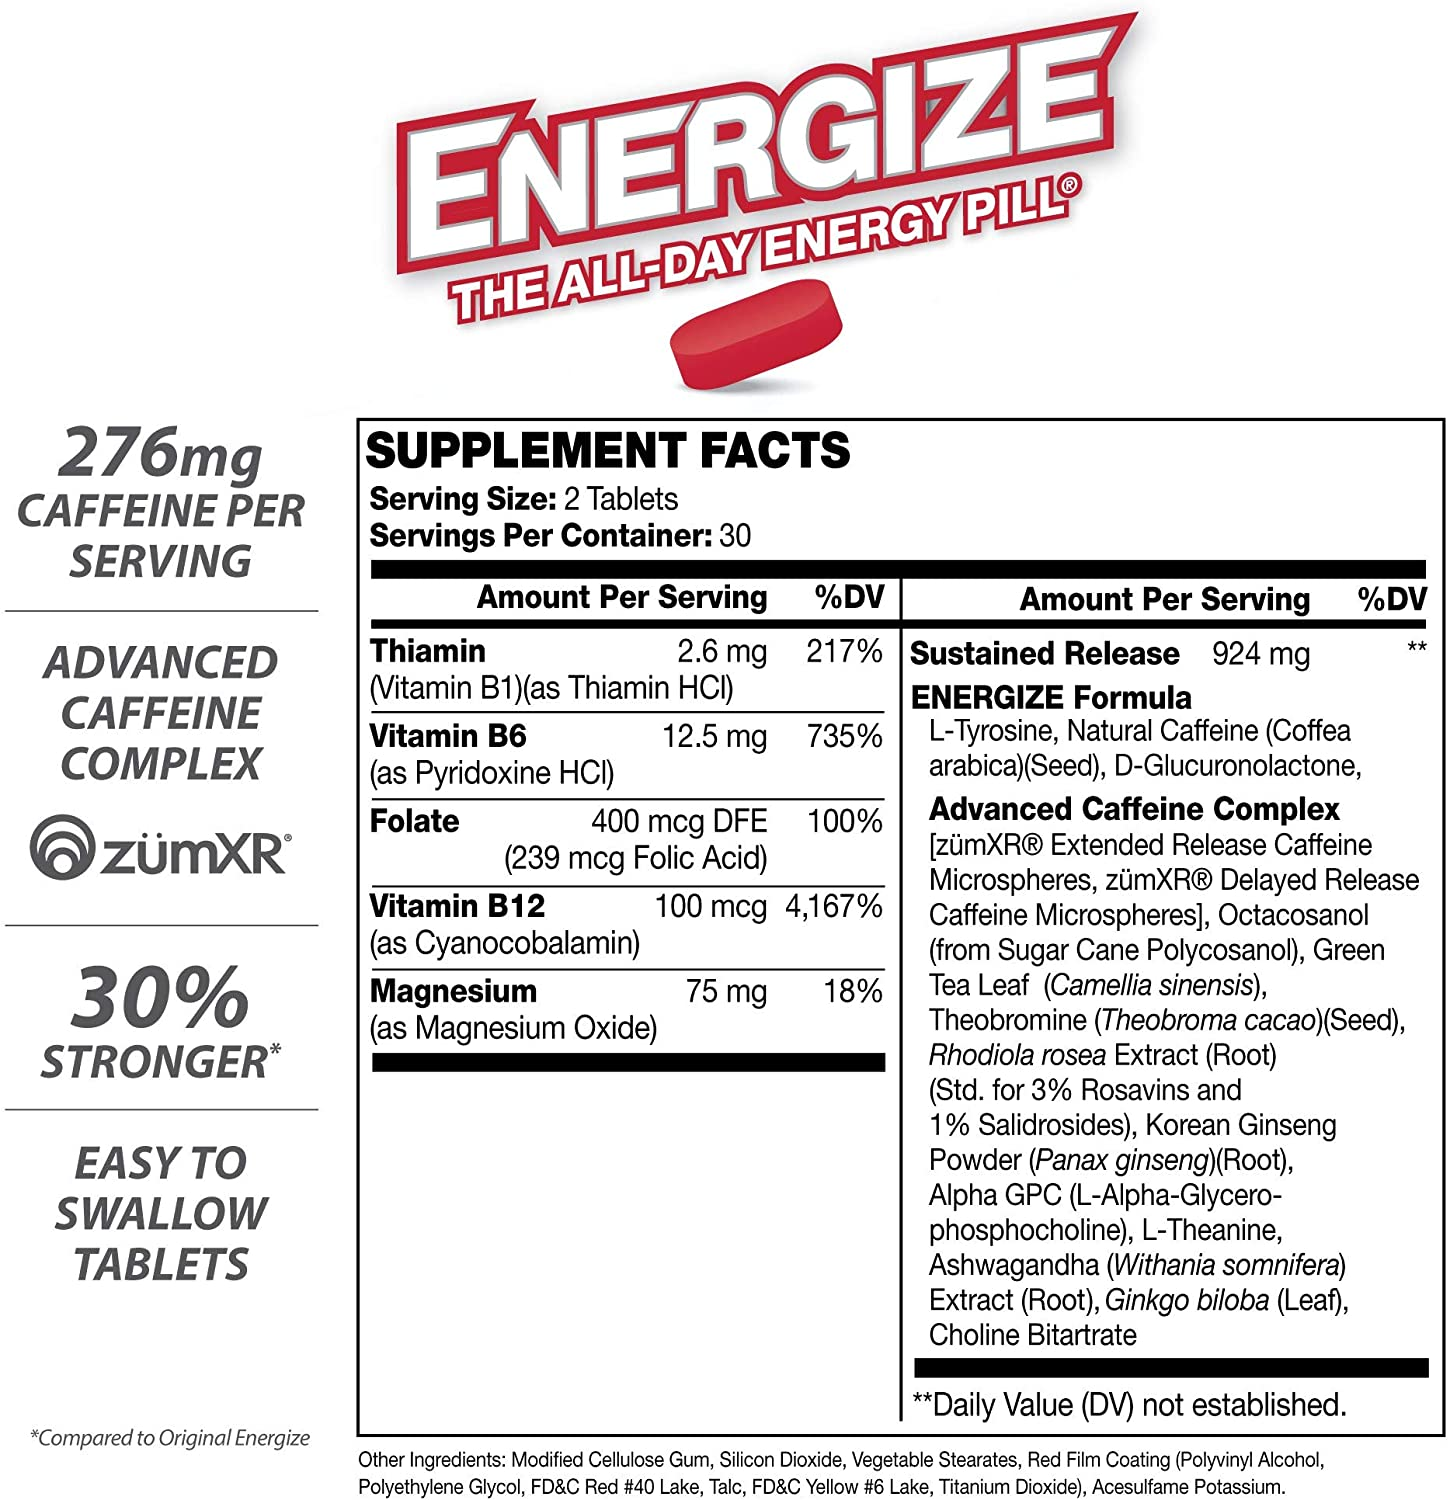 iSatori Energize Extra Strength Caffeine Pills - Fast Acting Long-Lasting Energy Pill - Extended-Release Caffeine - Improved Alertness and Clarity - All Day Energy, No Jitters, No Crash (60 Tablets): Health & Personal Care